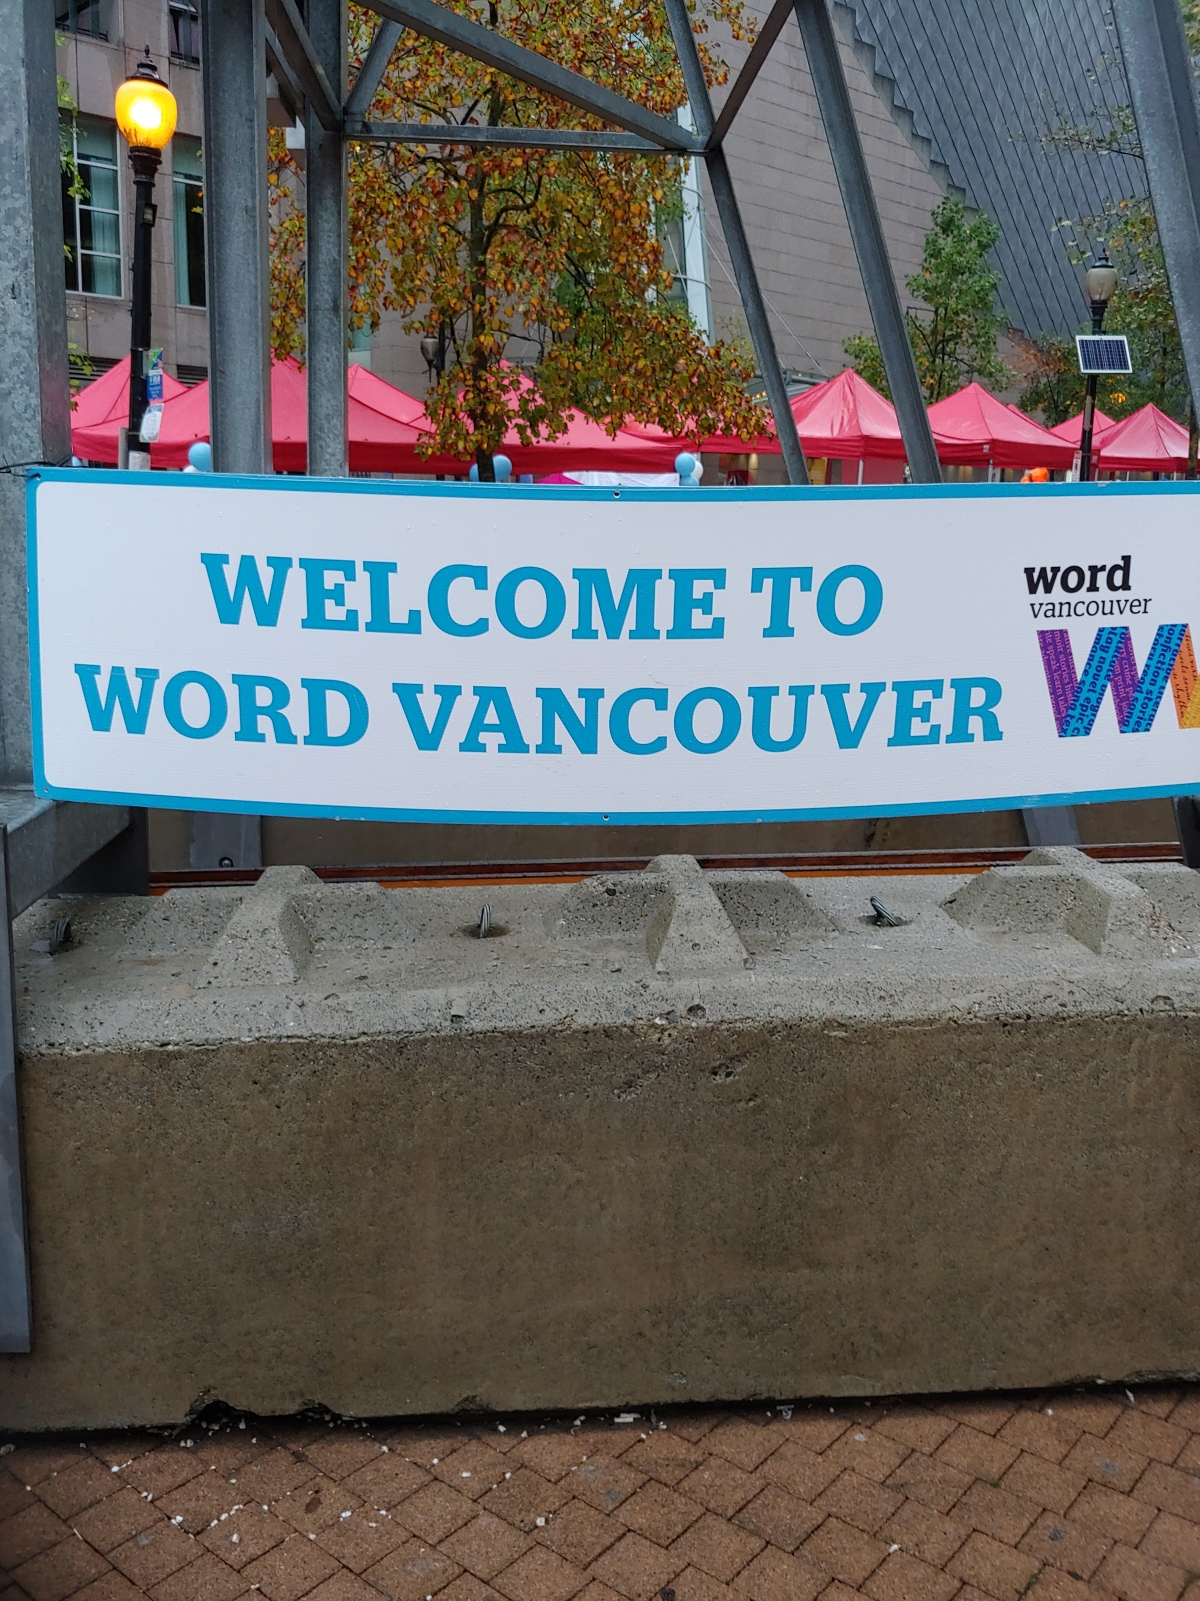 Rained Out at #Word Vancouver #MondayBlogs